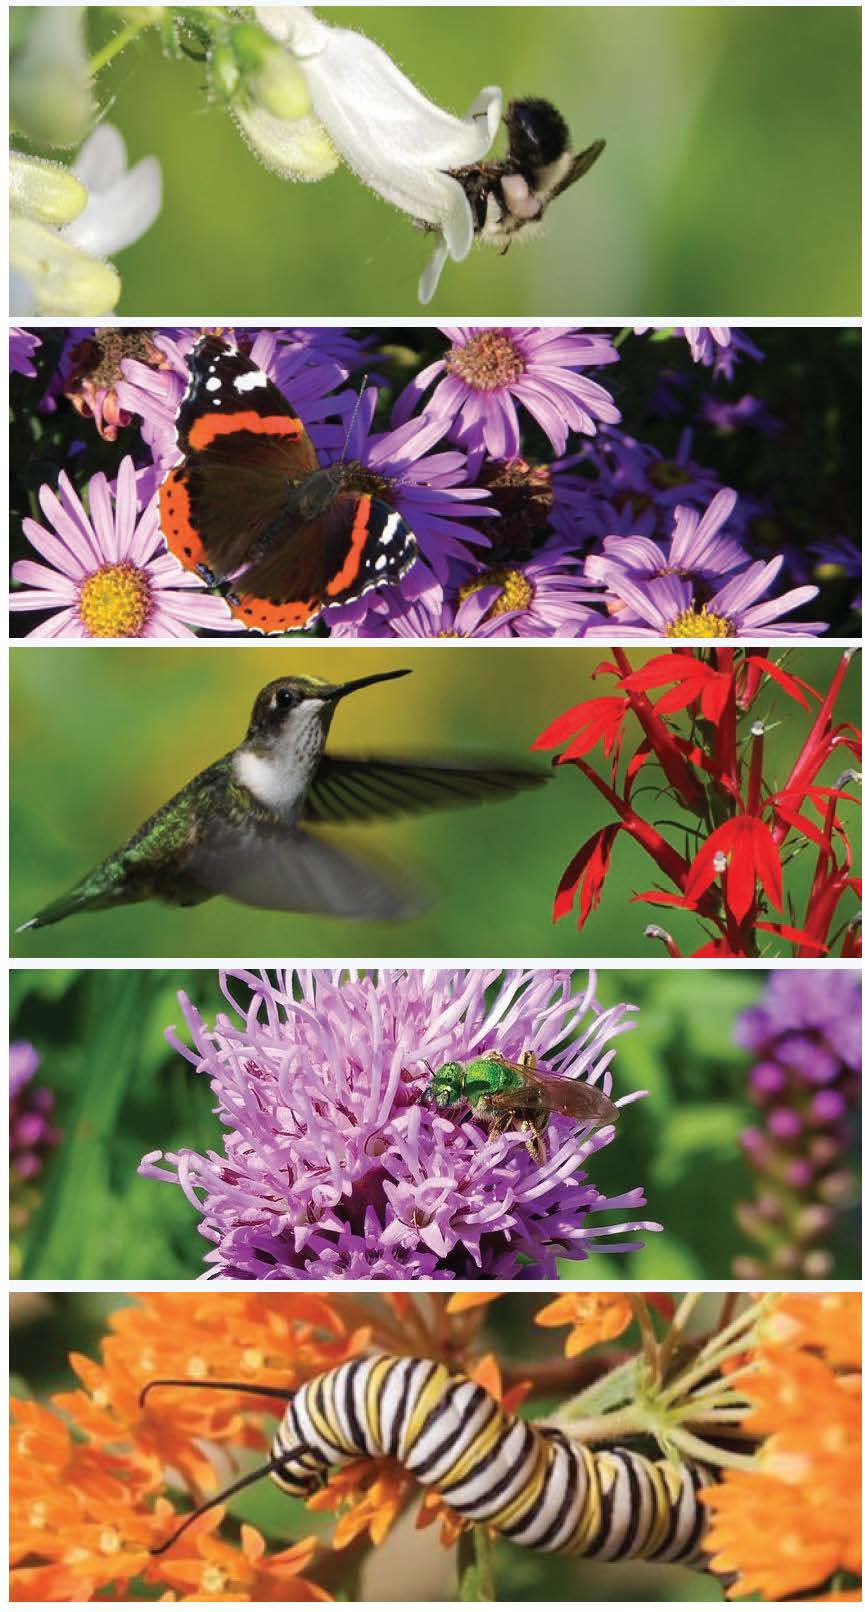 Our pollinator native plant combo supports biodiversity at a local level, and is important for ecological landscaping. Many wildflowers for a naturalized garden.